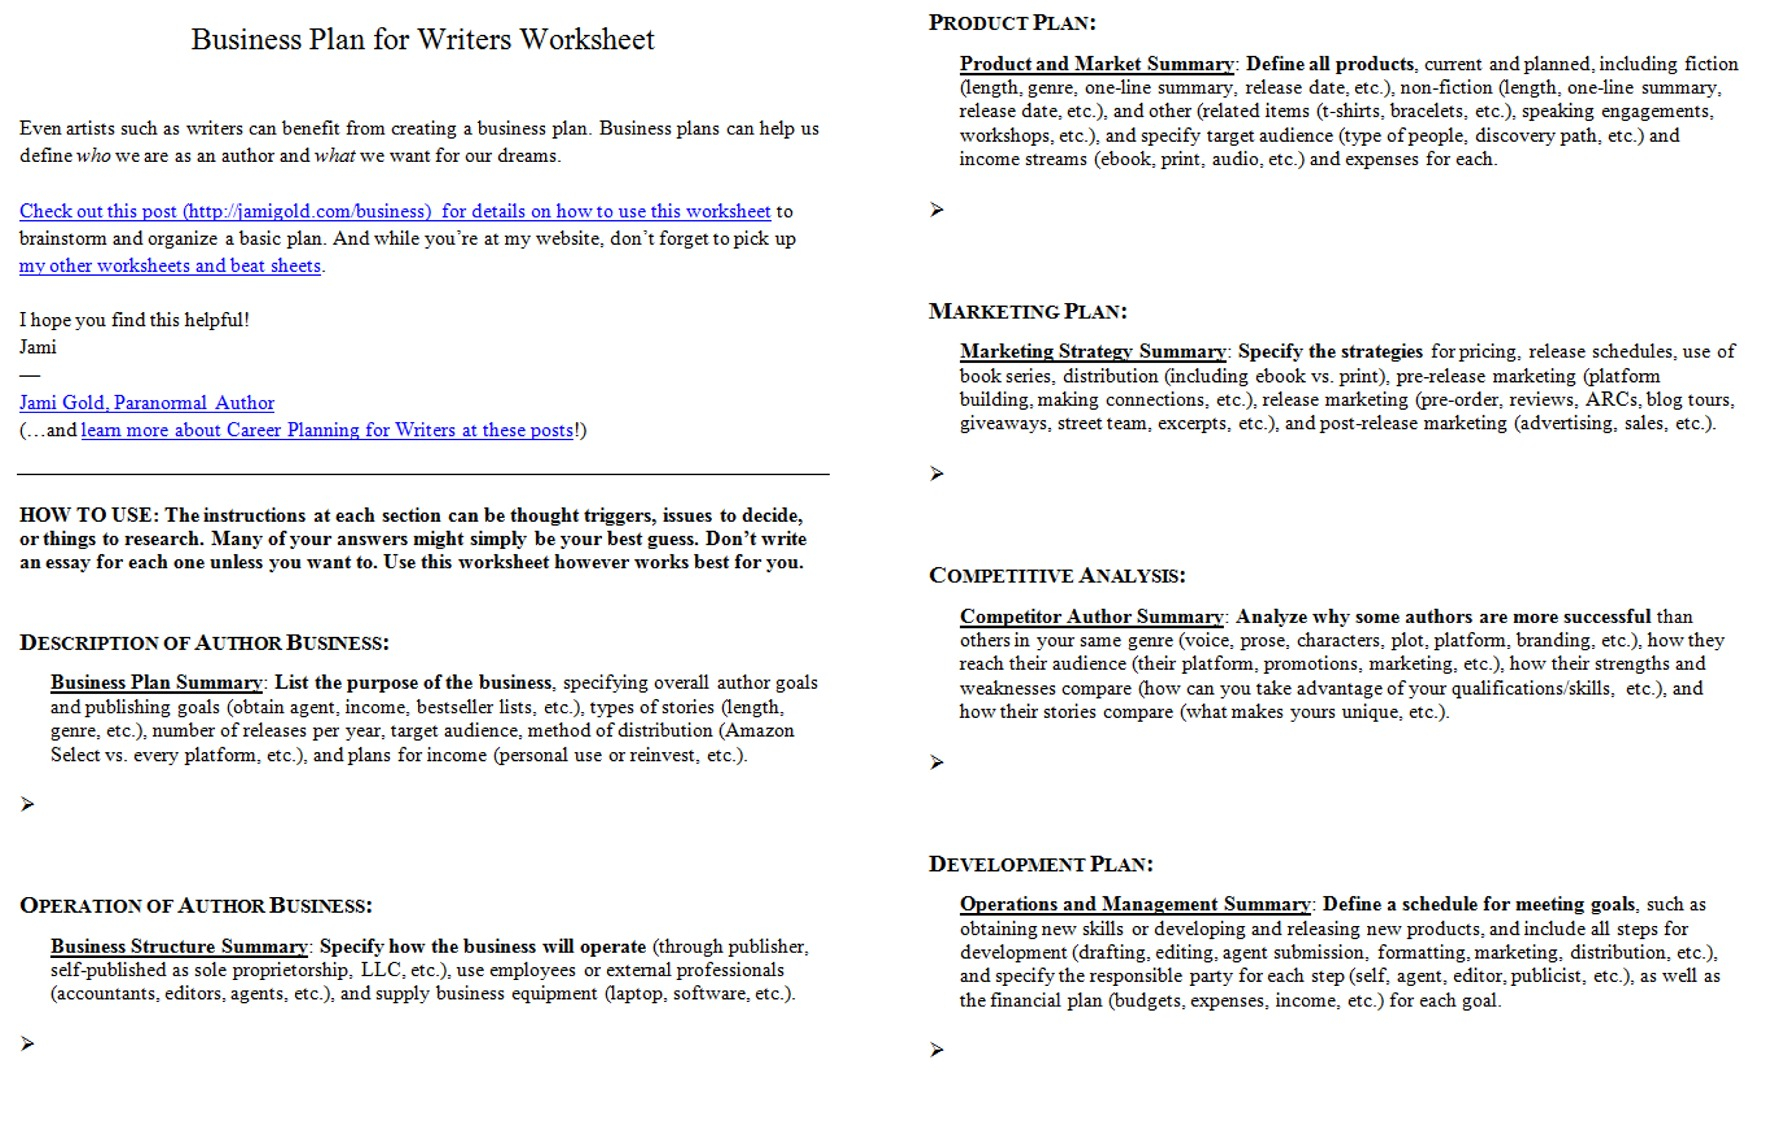 Aldiablosus  Inspiring Worksheets For Writers  Jami Gold Paranormal Author With Extraordinary Screen Shot Of Both Pages Of The Business Plan For Writers Worksheet With Charming Grade  Math Worksheets Also Algebra Review Worksheet In Addition Solving For Variables Worksheet And Russian Revolution Worksheet As Well As Areas Of Regular Polygons Worksheet Additionally Permutations And Combinations Worksheet With Answers From Jamigoldcom With Aldiablosus  Extraordinary Worksheets For Writers  Jami Gold Paranormal Author With Charming Screen Shot Of Both Pages Of The Business Plan For Writers Worksheet And Inspiring Grade  Math Worksheets Also Algebra Review Worksheet In Addition Solving For Variables Worksheet From Jamigoldcom